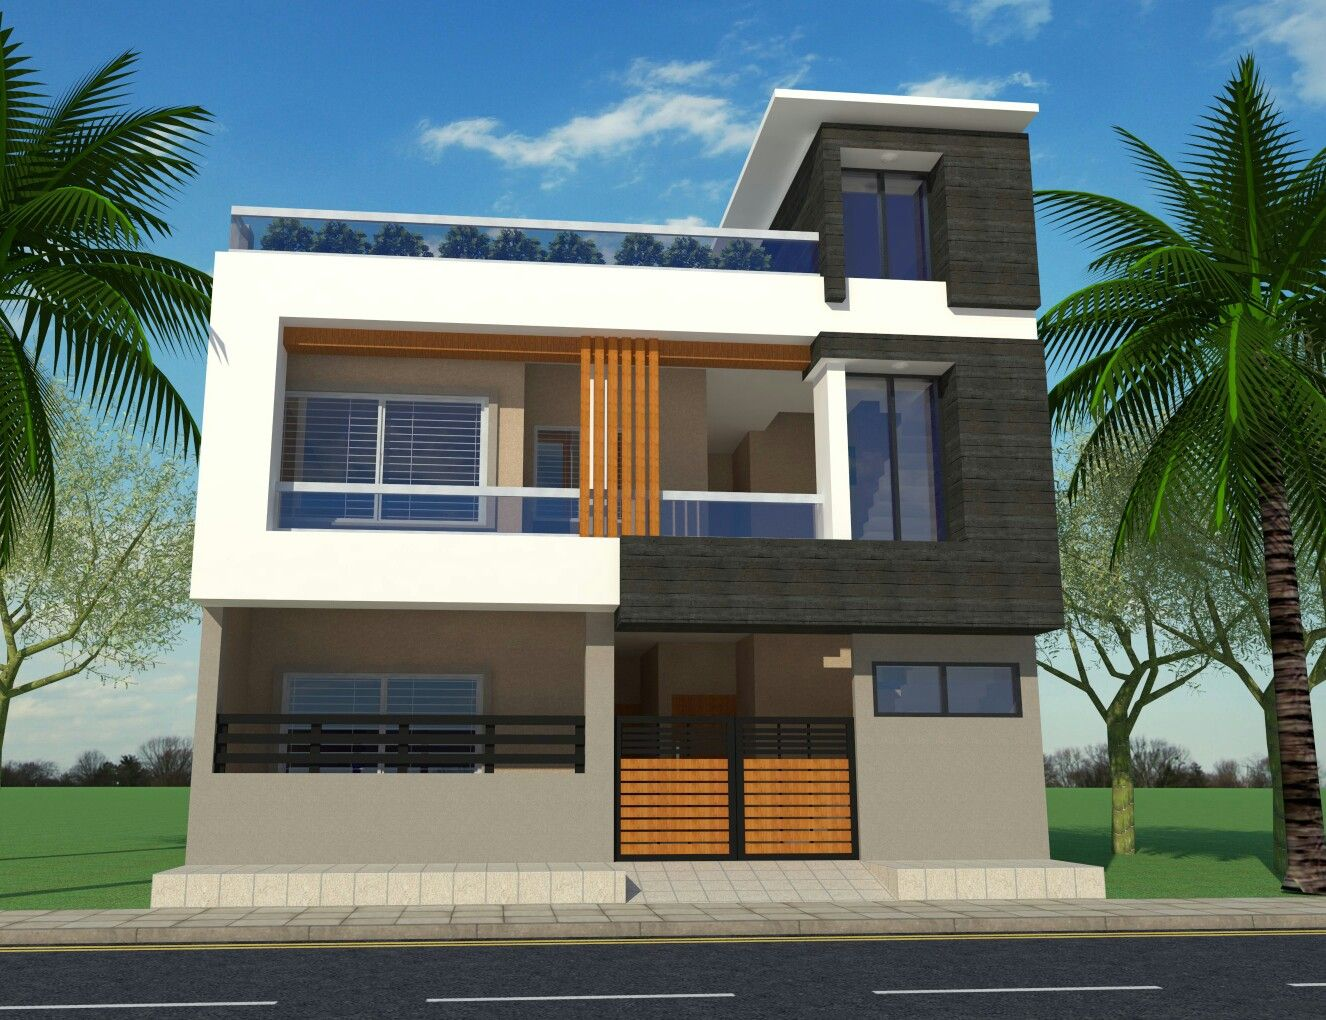 G 1 house front elevation modern house elevation house front design house gate design house front